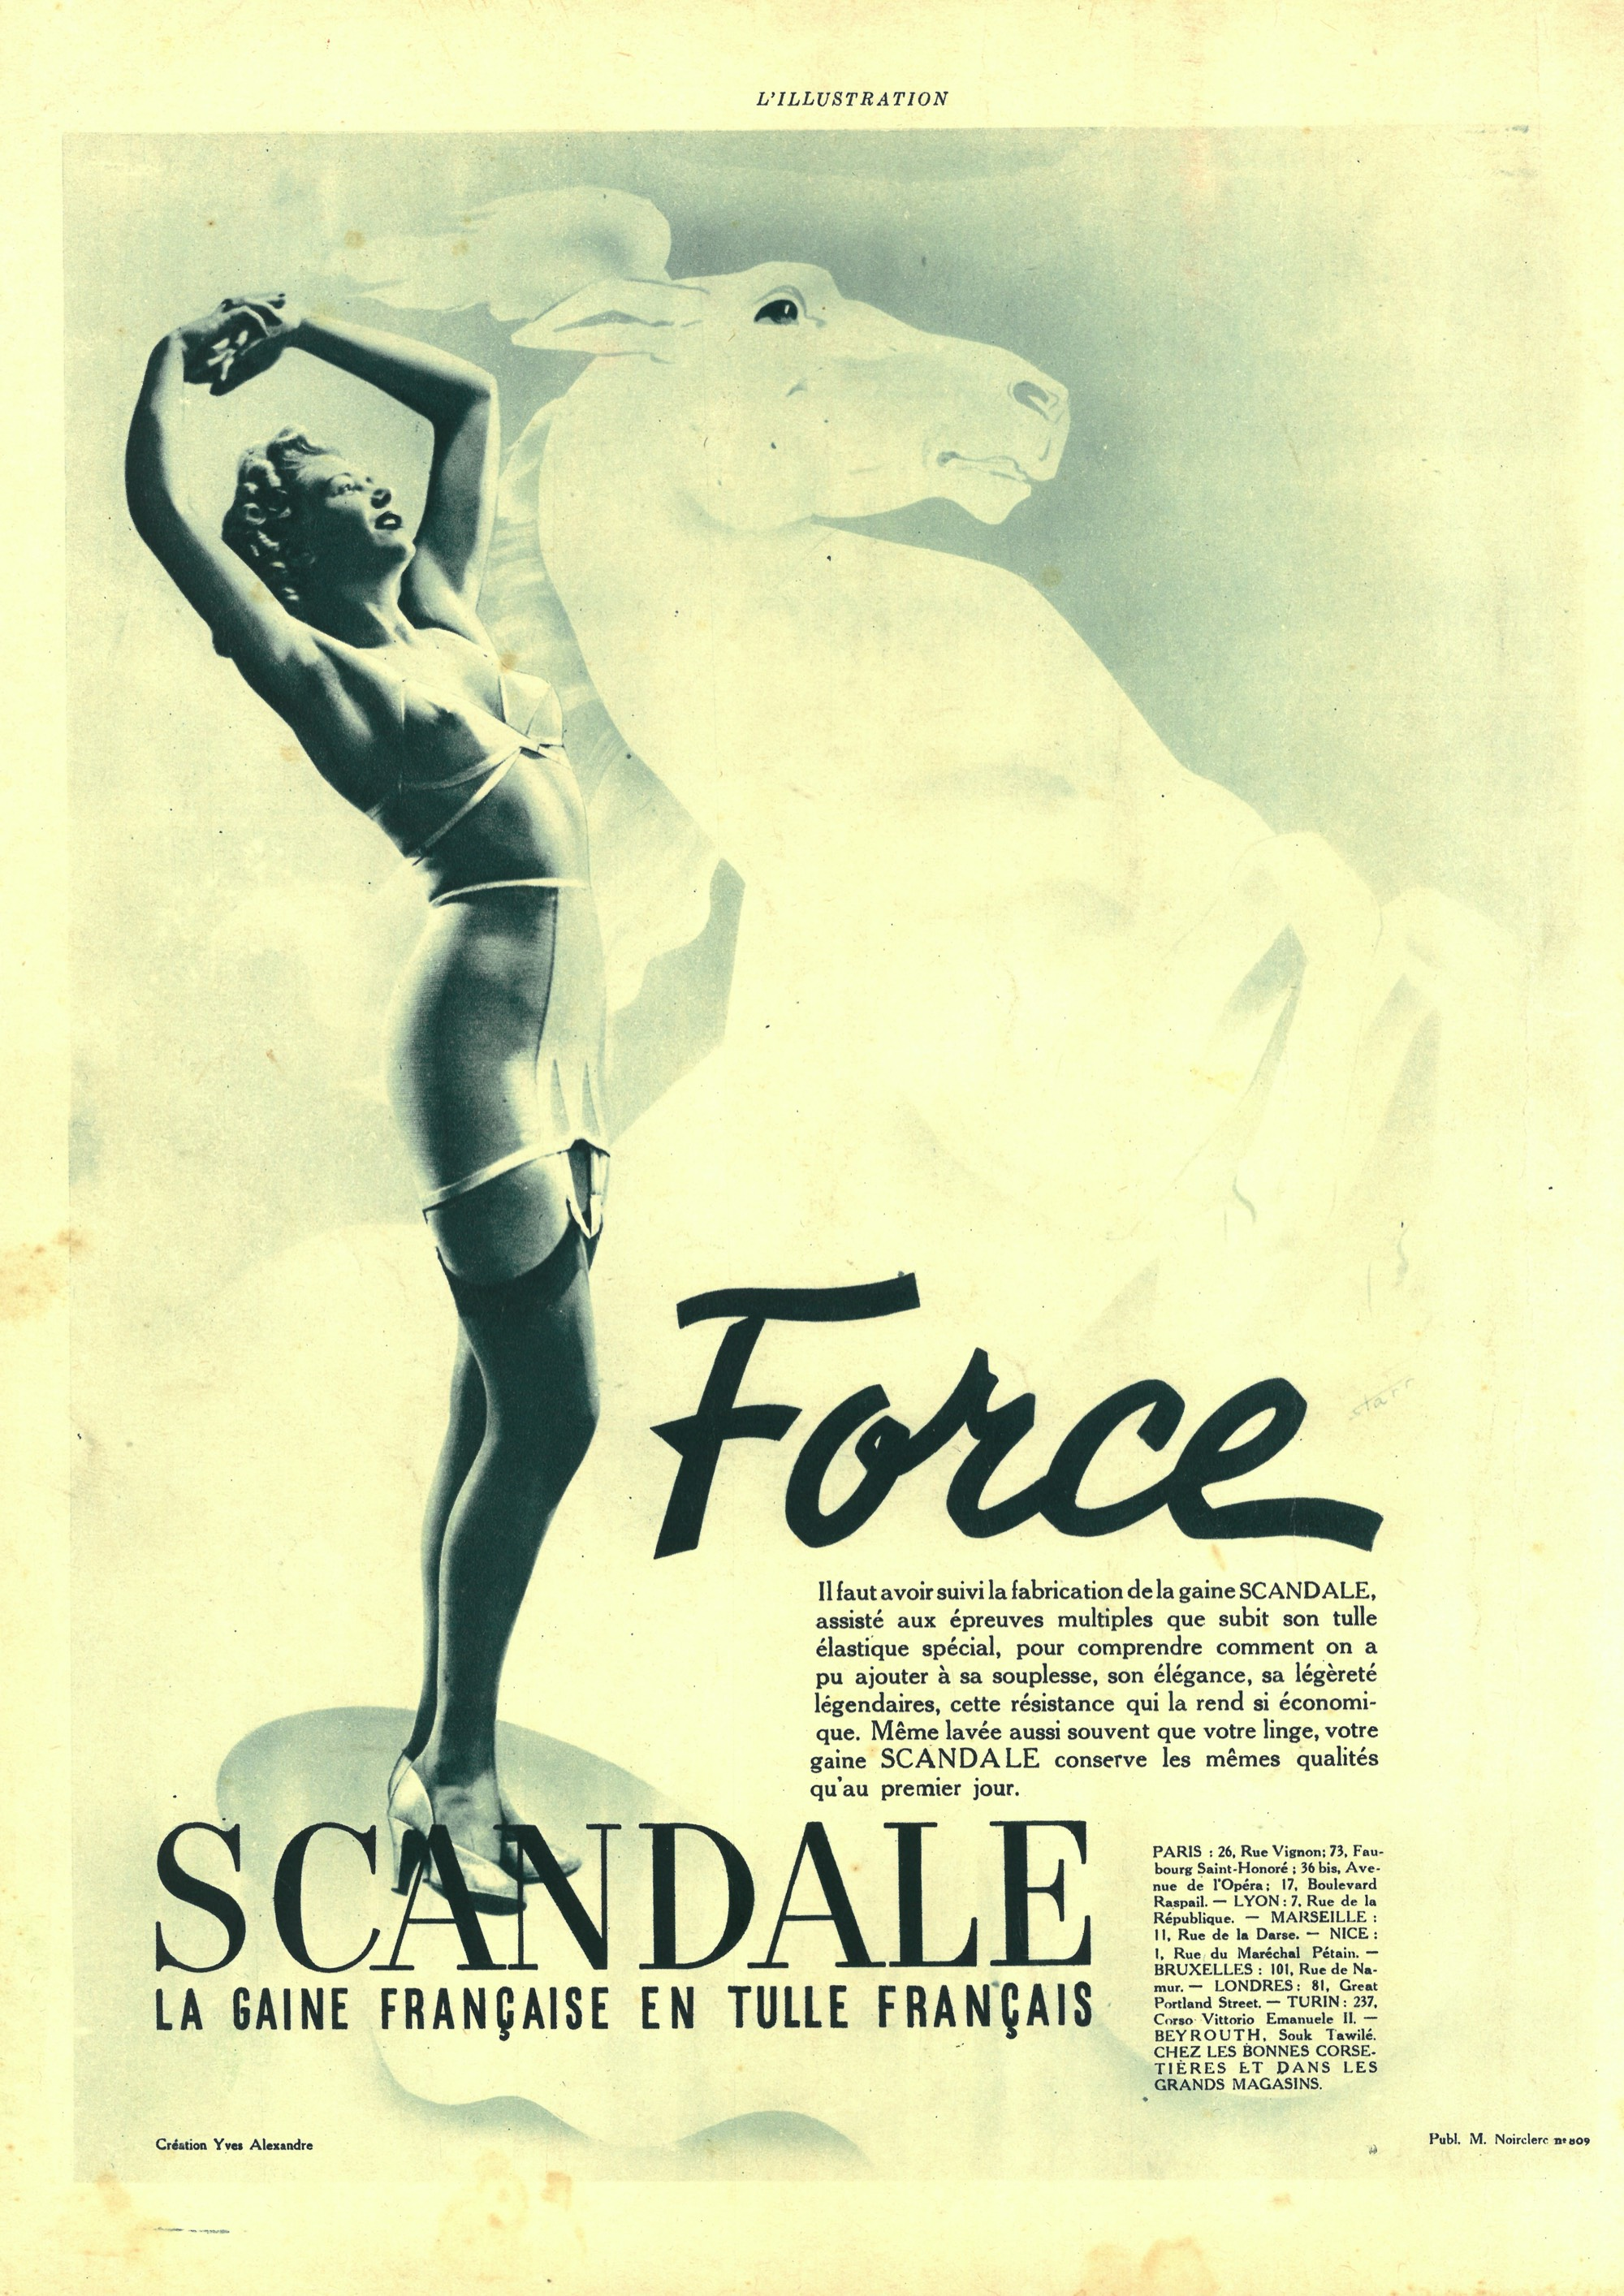 scandale 1940-starr force Vogue avril-mai